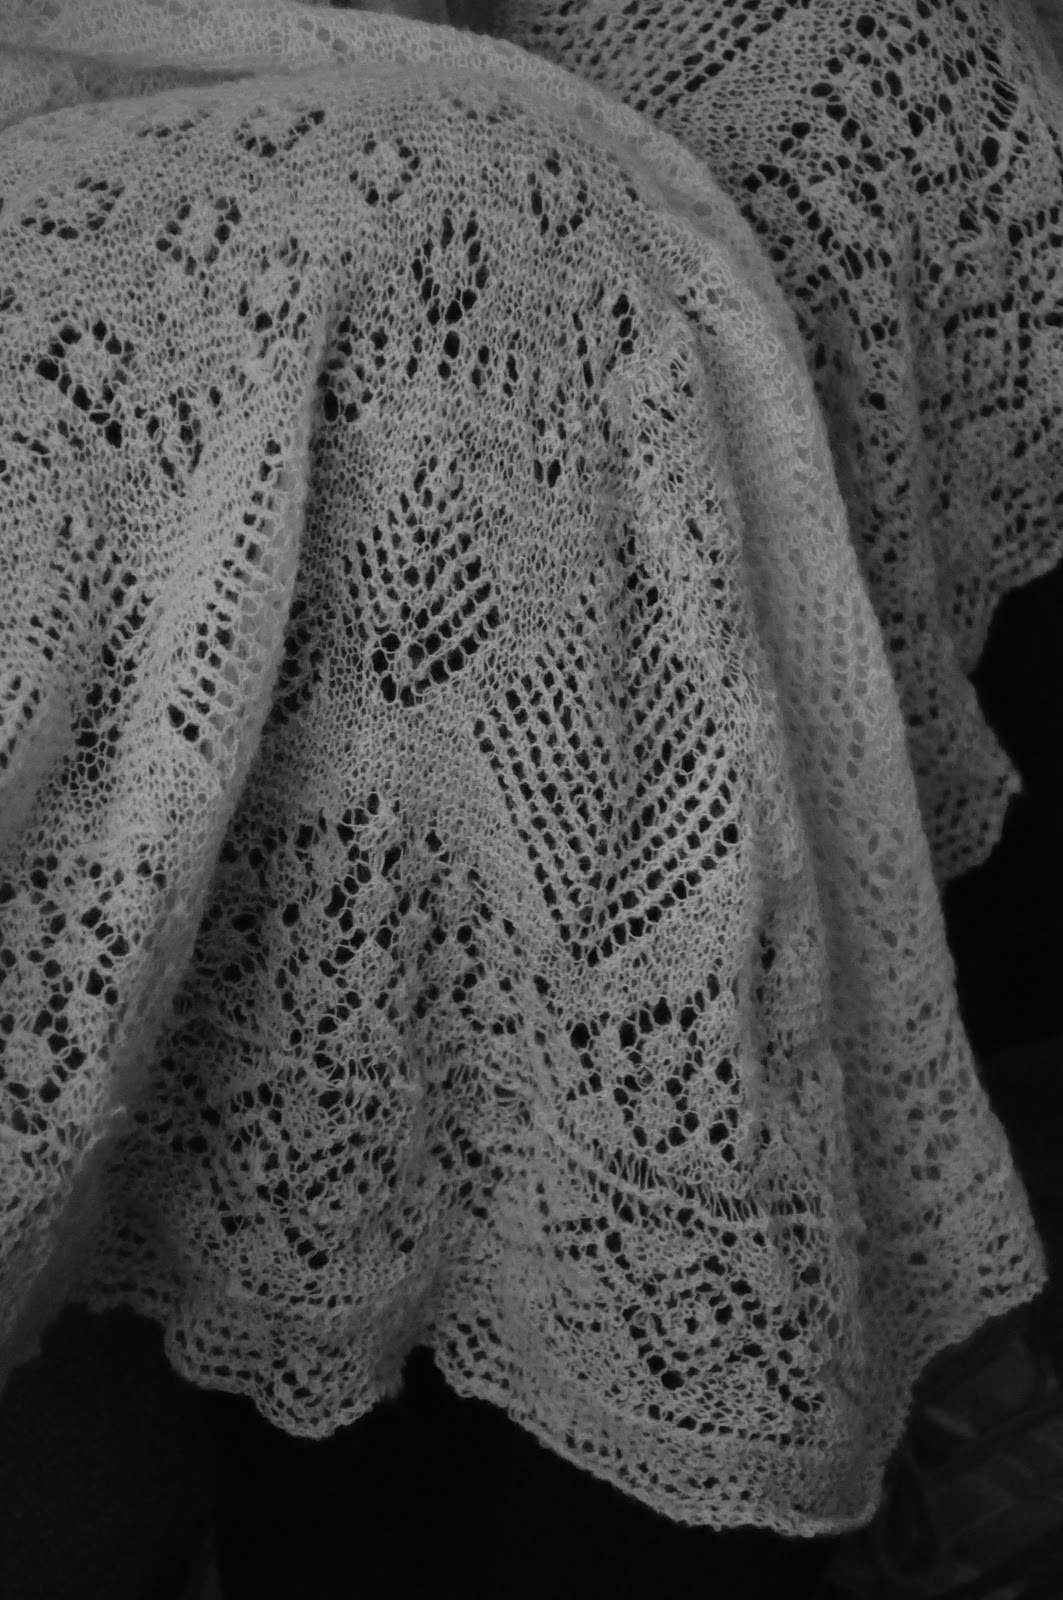 Knitting Pattern For Christening Shawl Free : Vintage Sally: Sheltland Lace Knitting heirloom Christening shawl